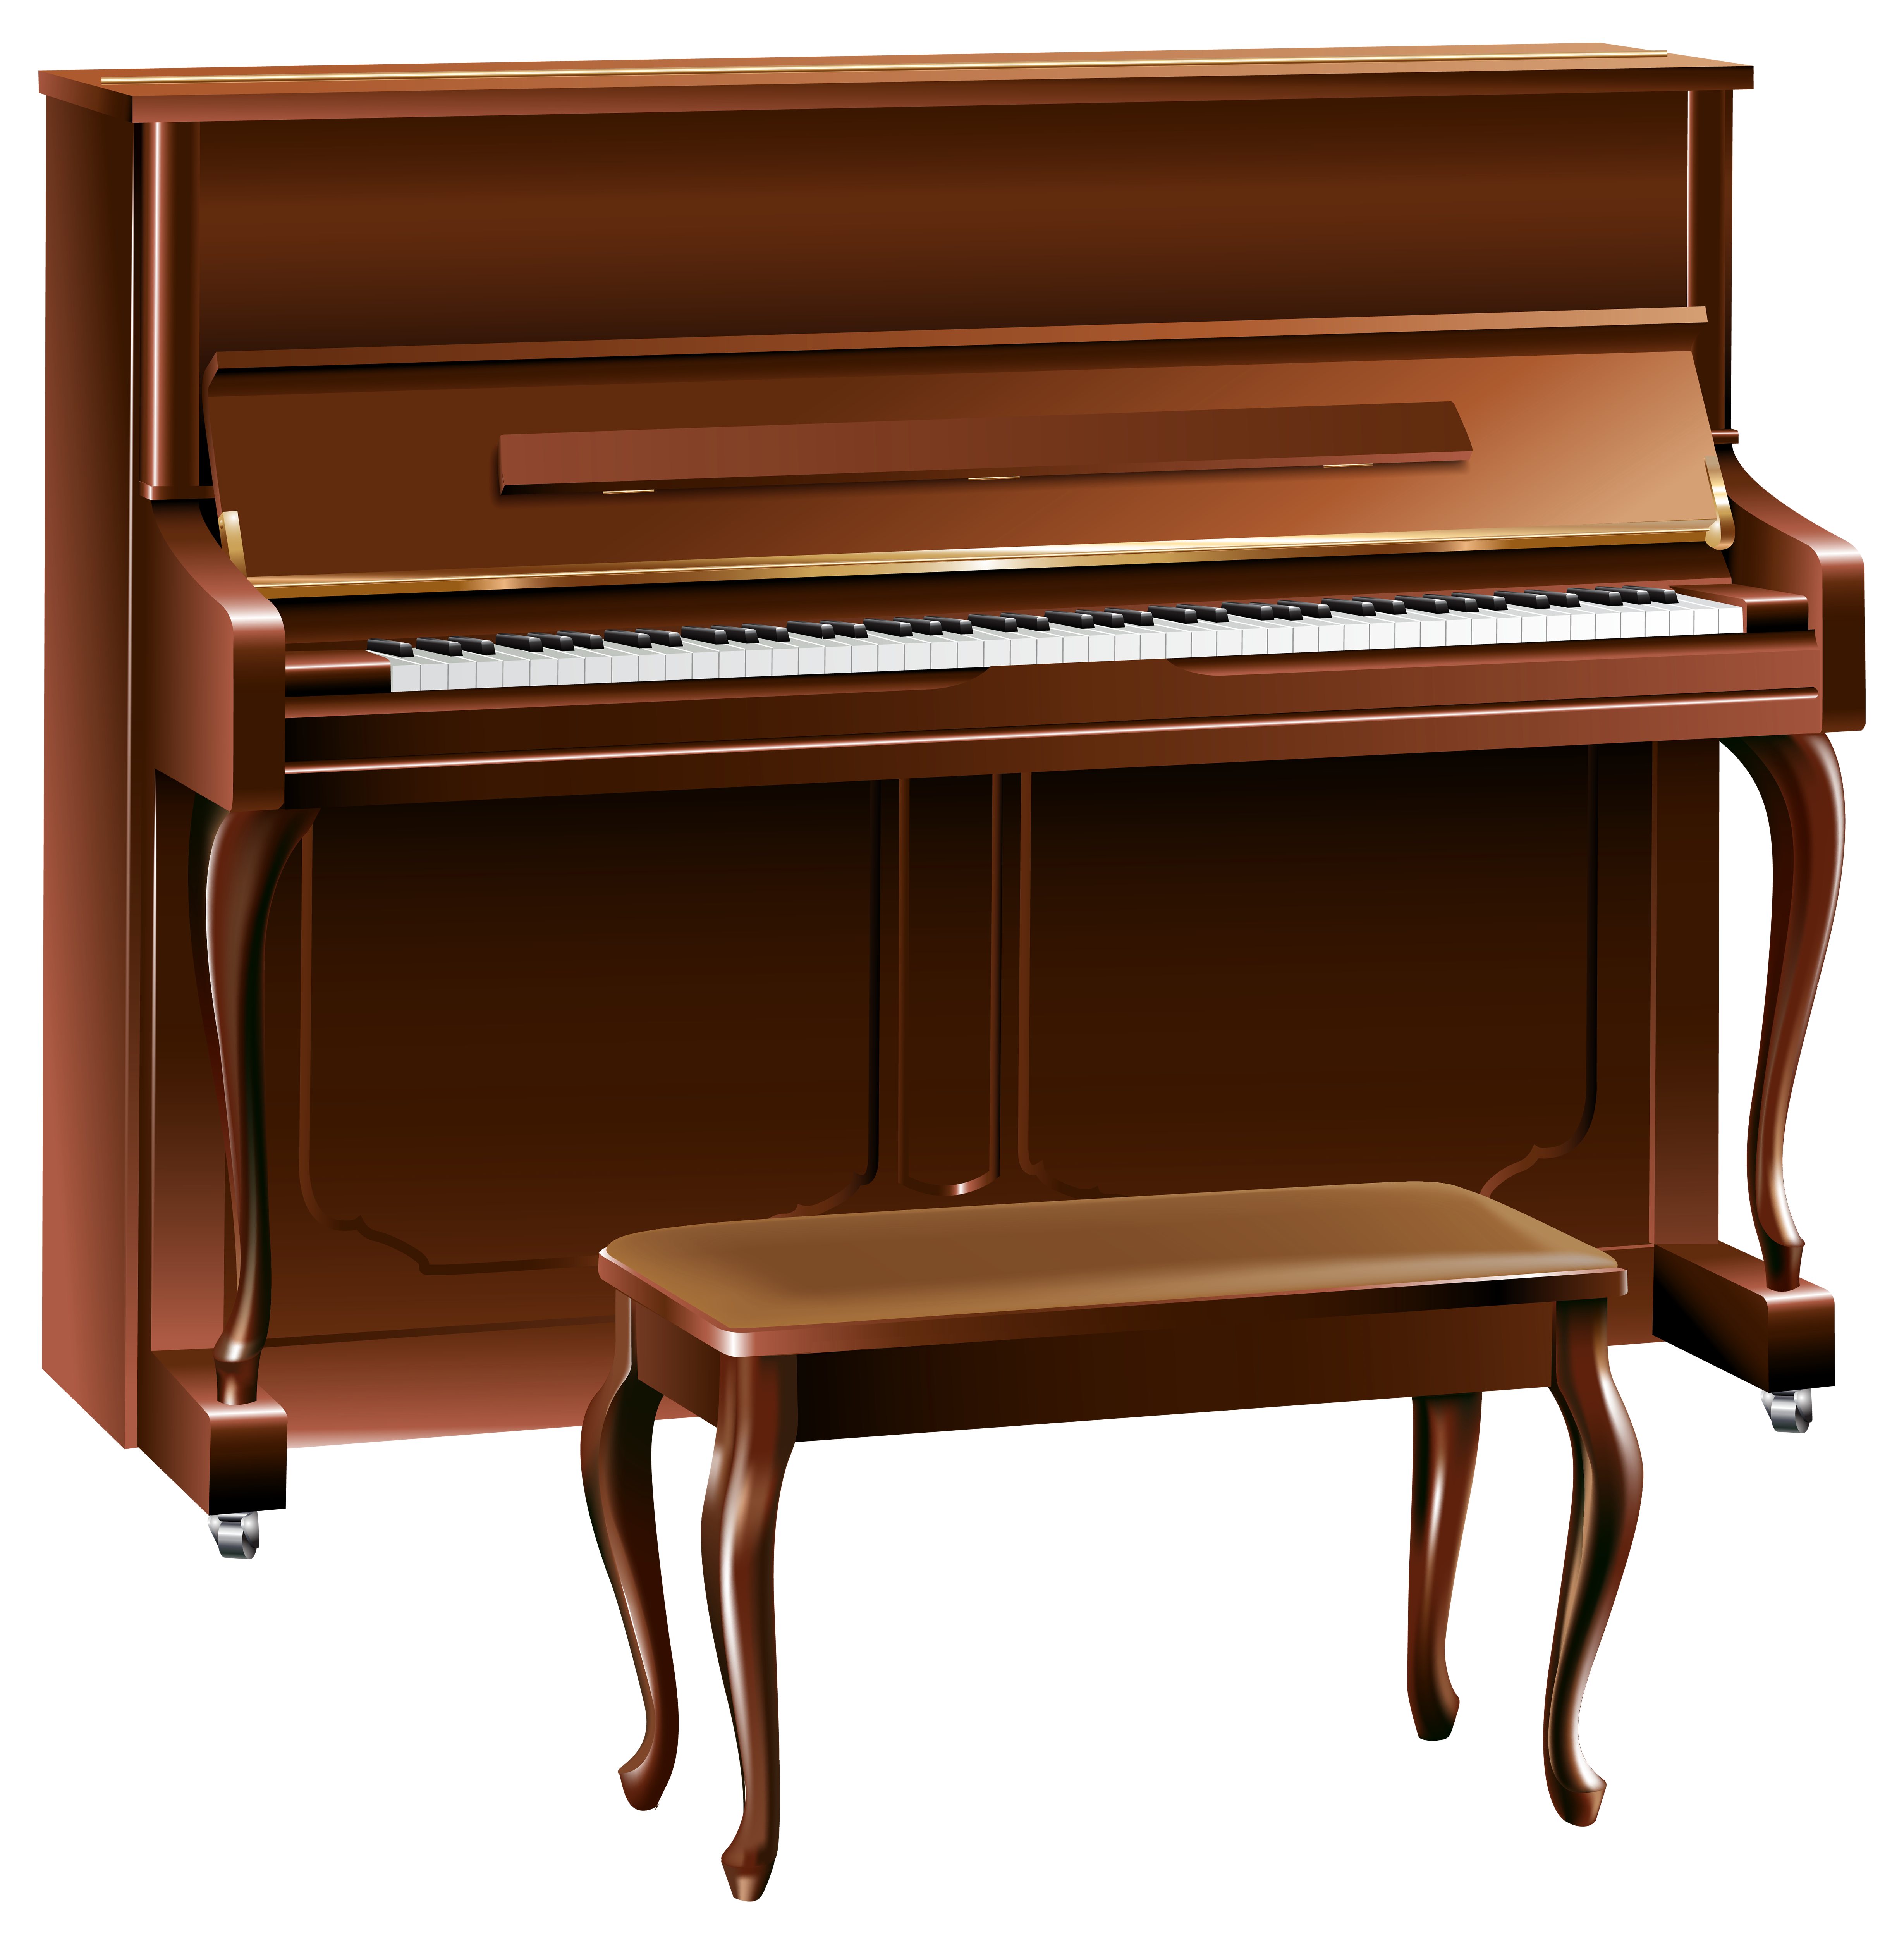 Upright piano clipart graphic royalty free Free Upright Piano Cliparts, Download Free Clip Art, Free ... graphic royalty free